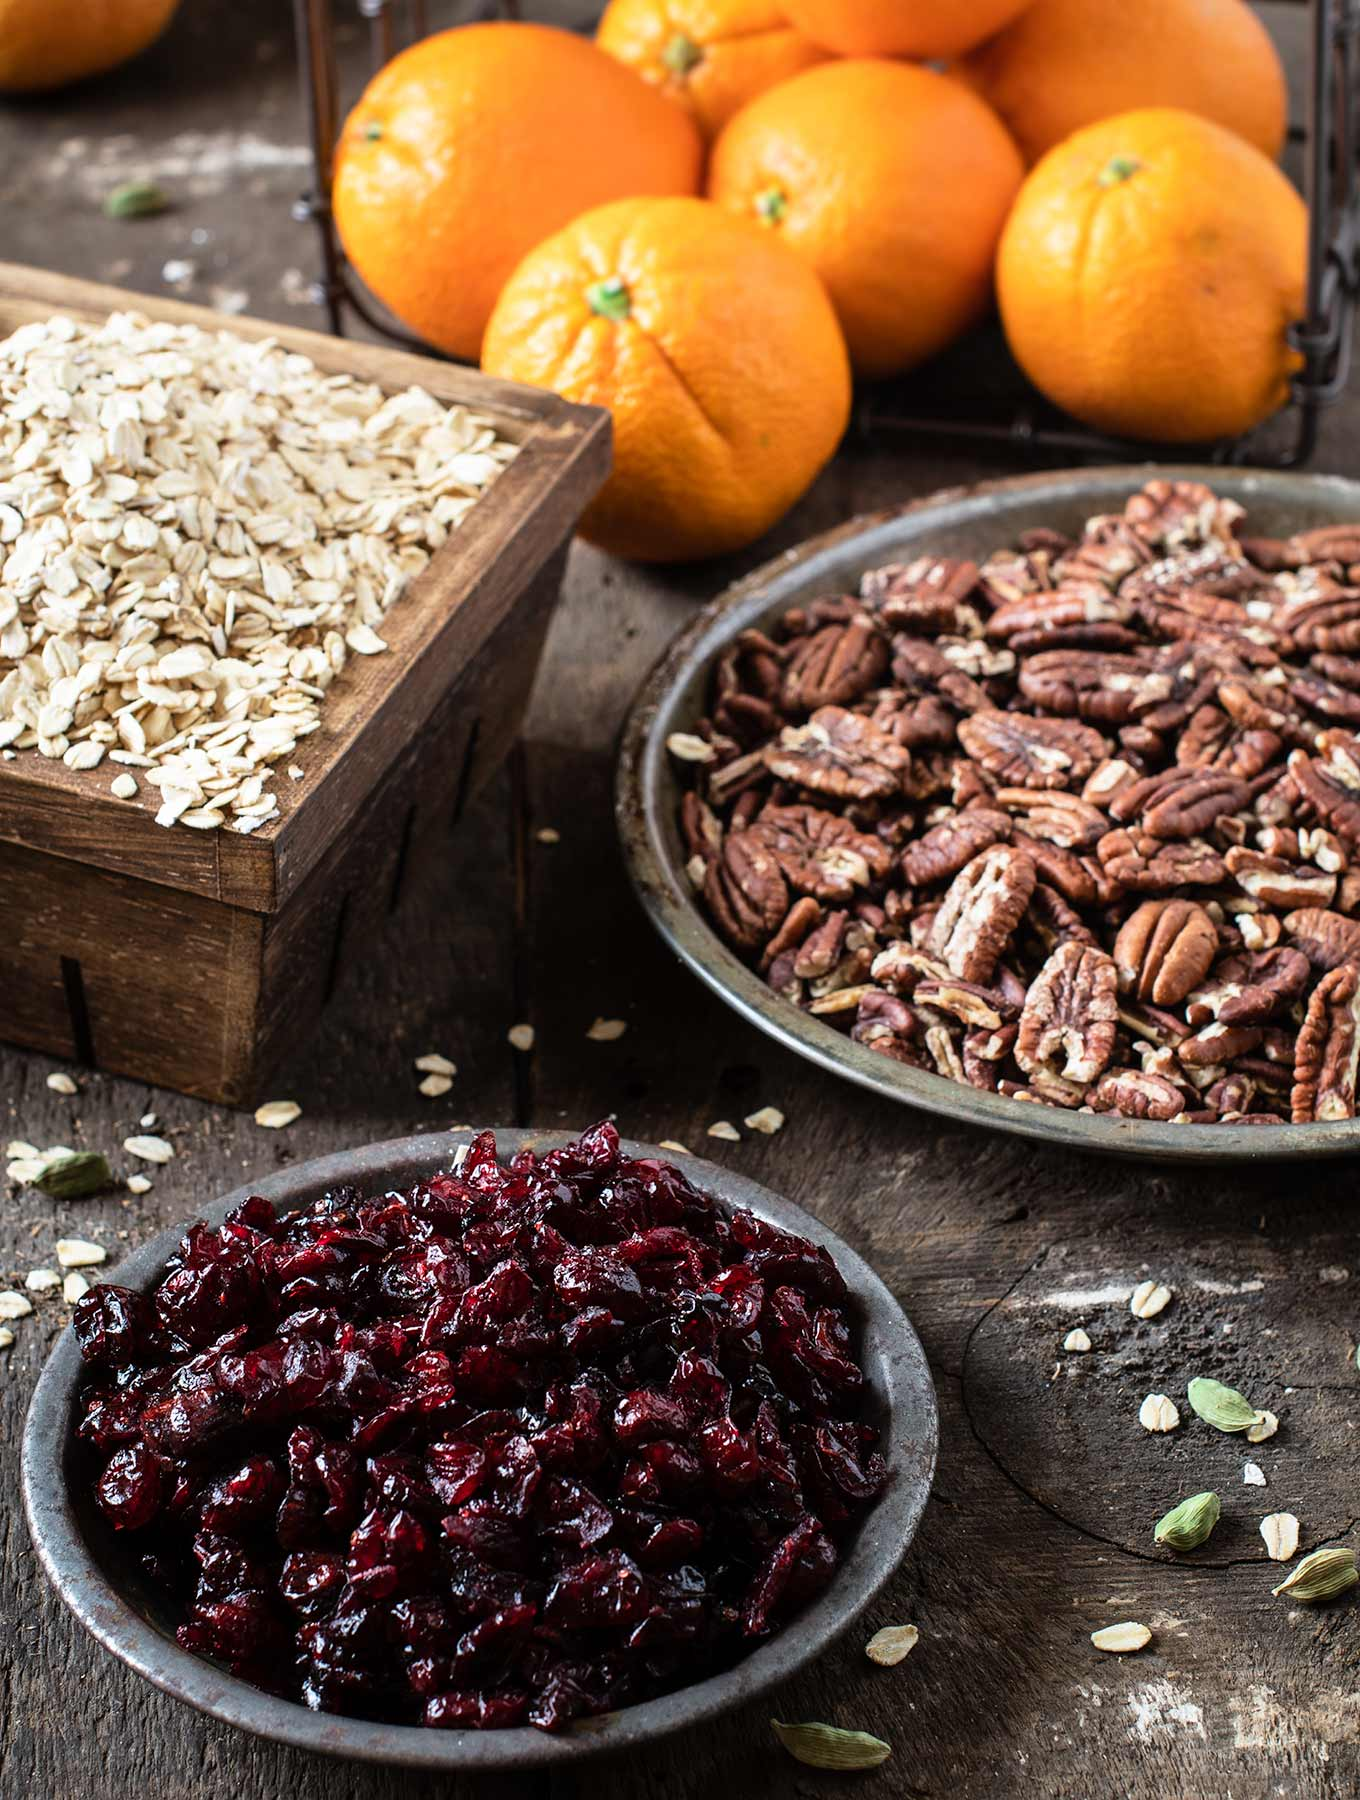 Oranges, oats, pecans and cranberries